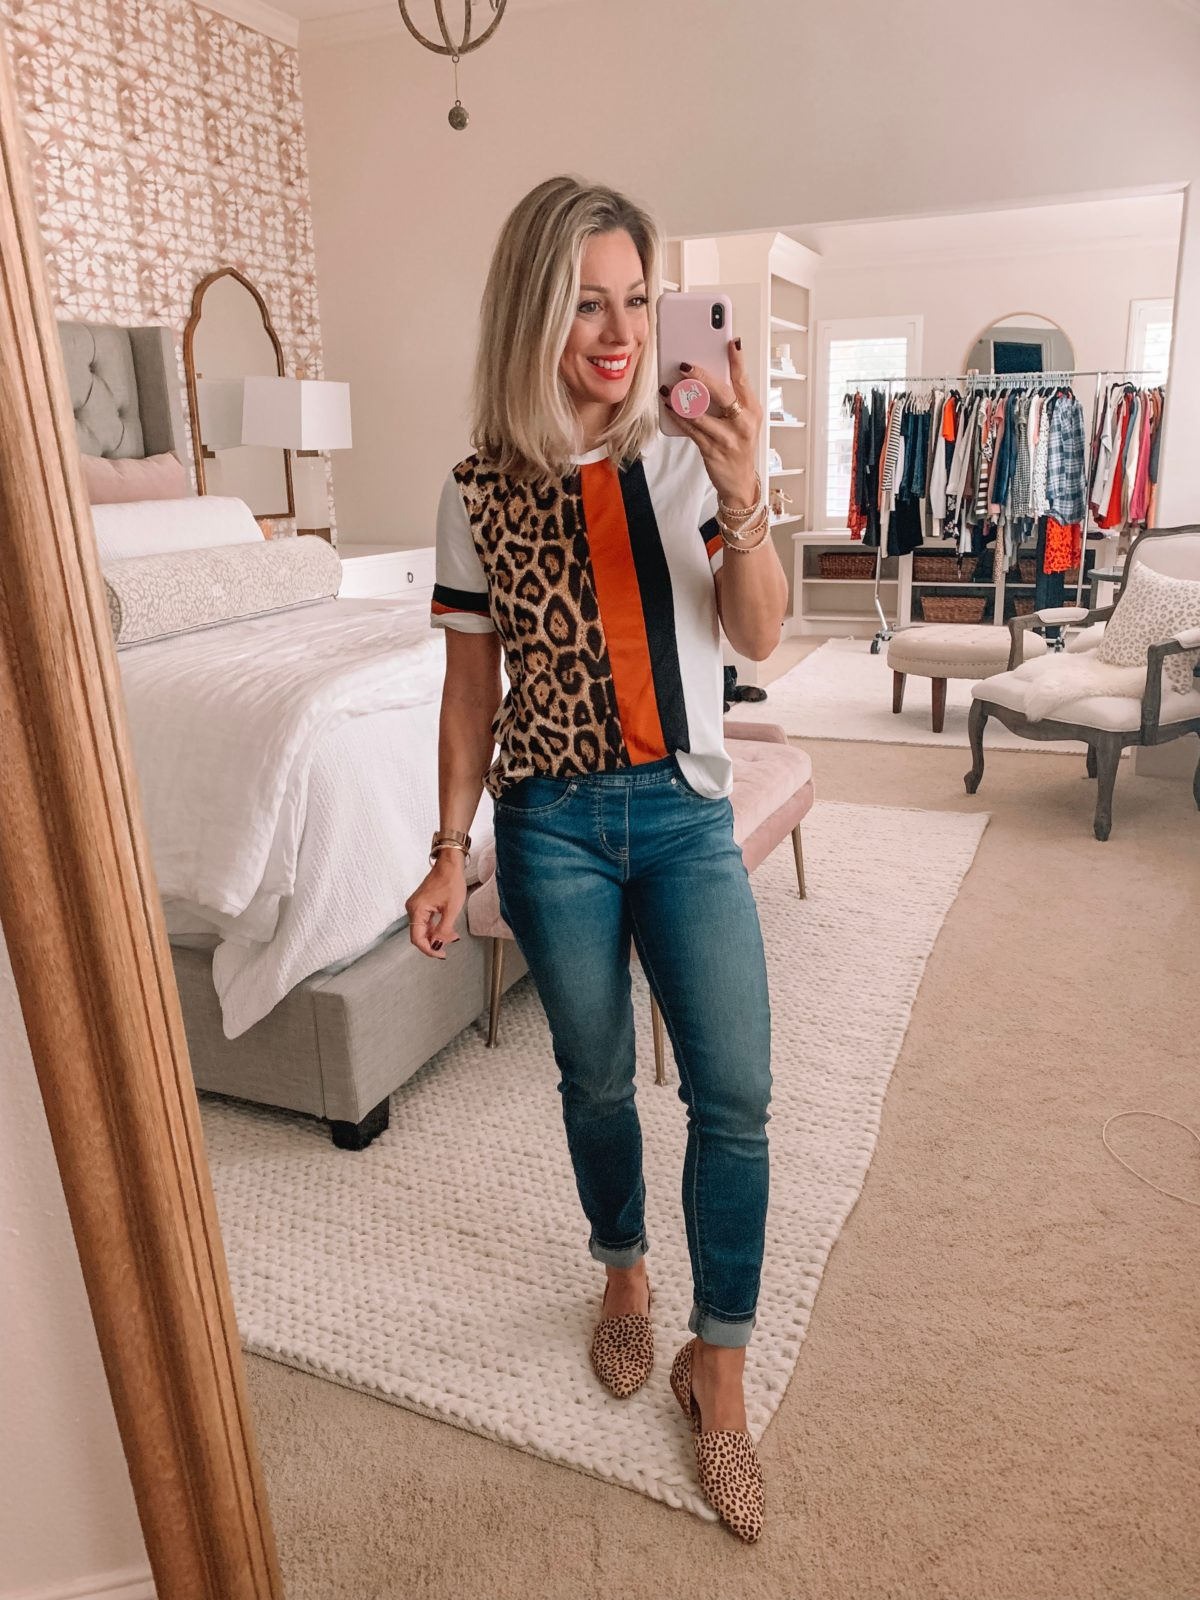 Amazon fashion haul, color block top and jeans